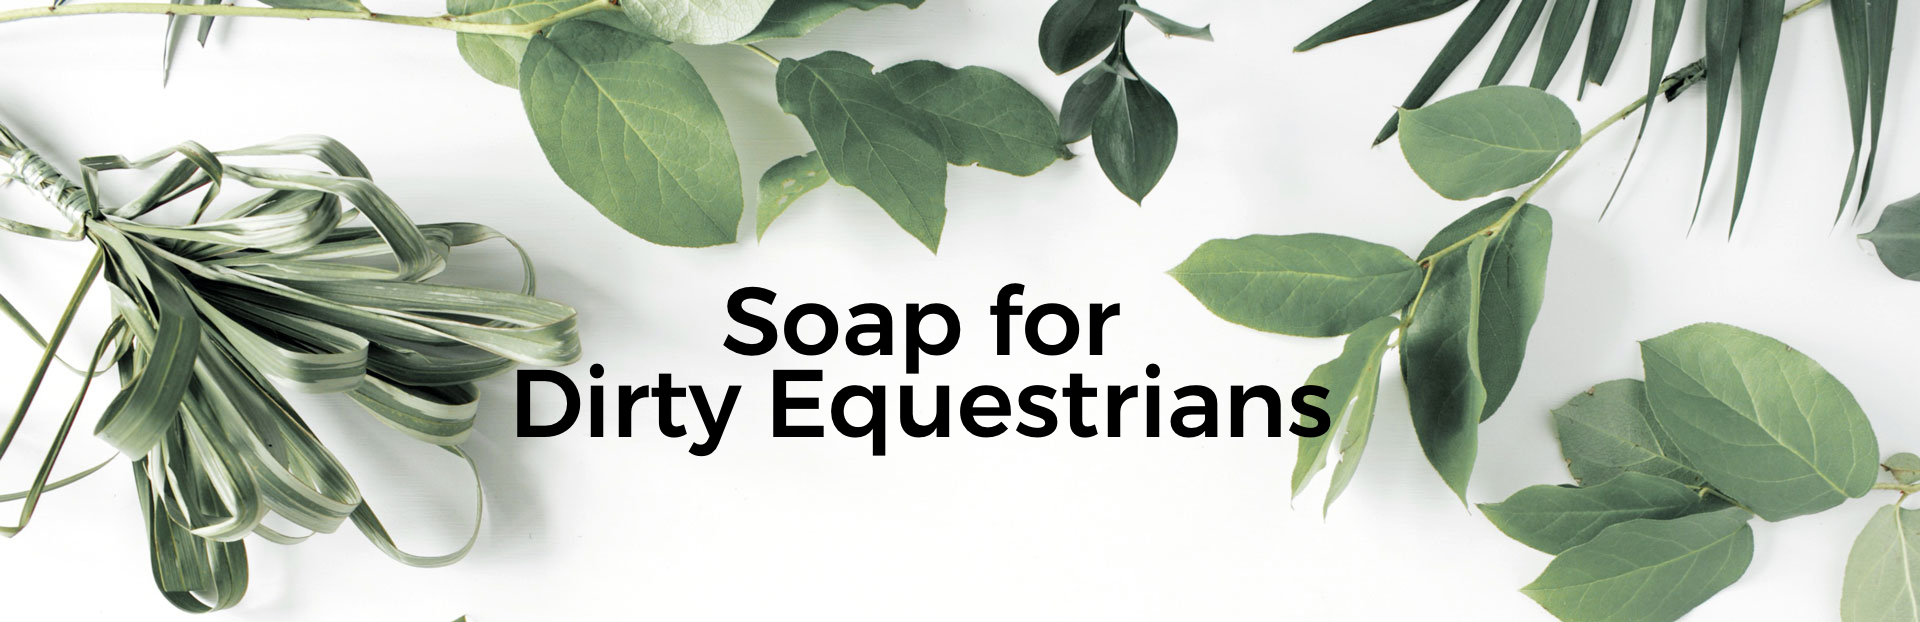 Soap for Dirty Equestrians Header Shop - Natural Vegan Cruelty Free Soap for Dirty Equestrians